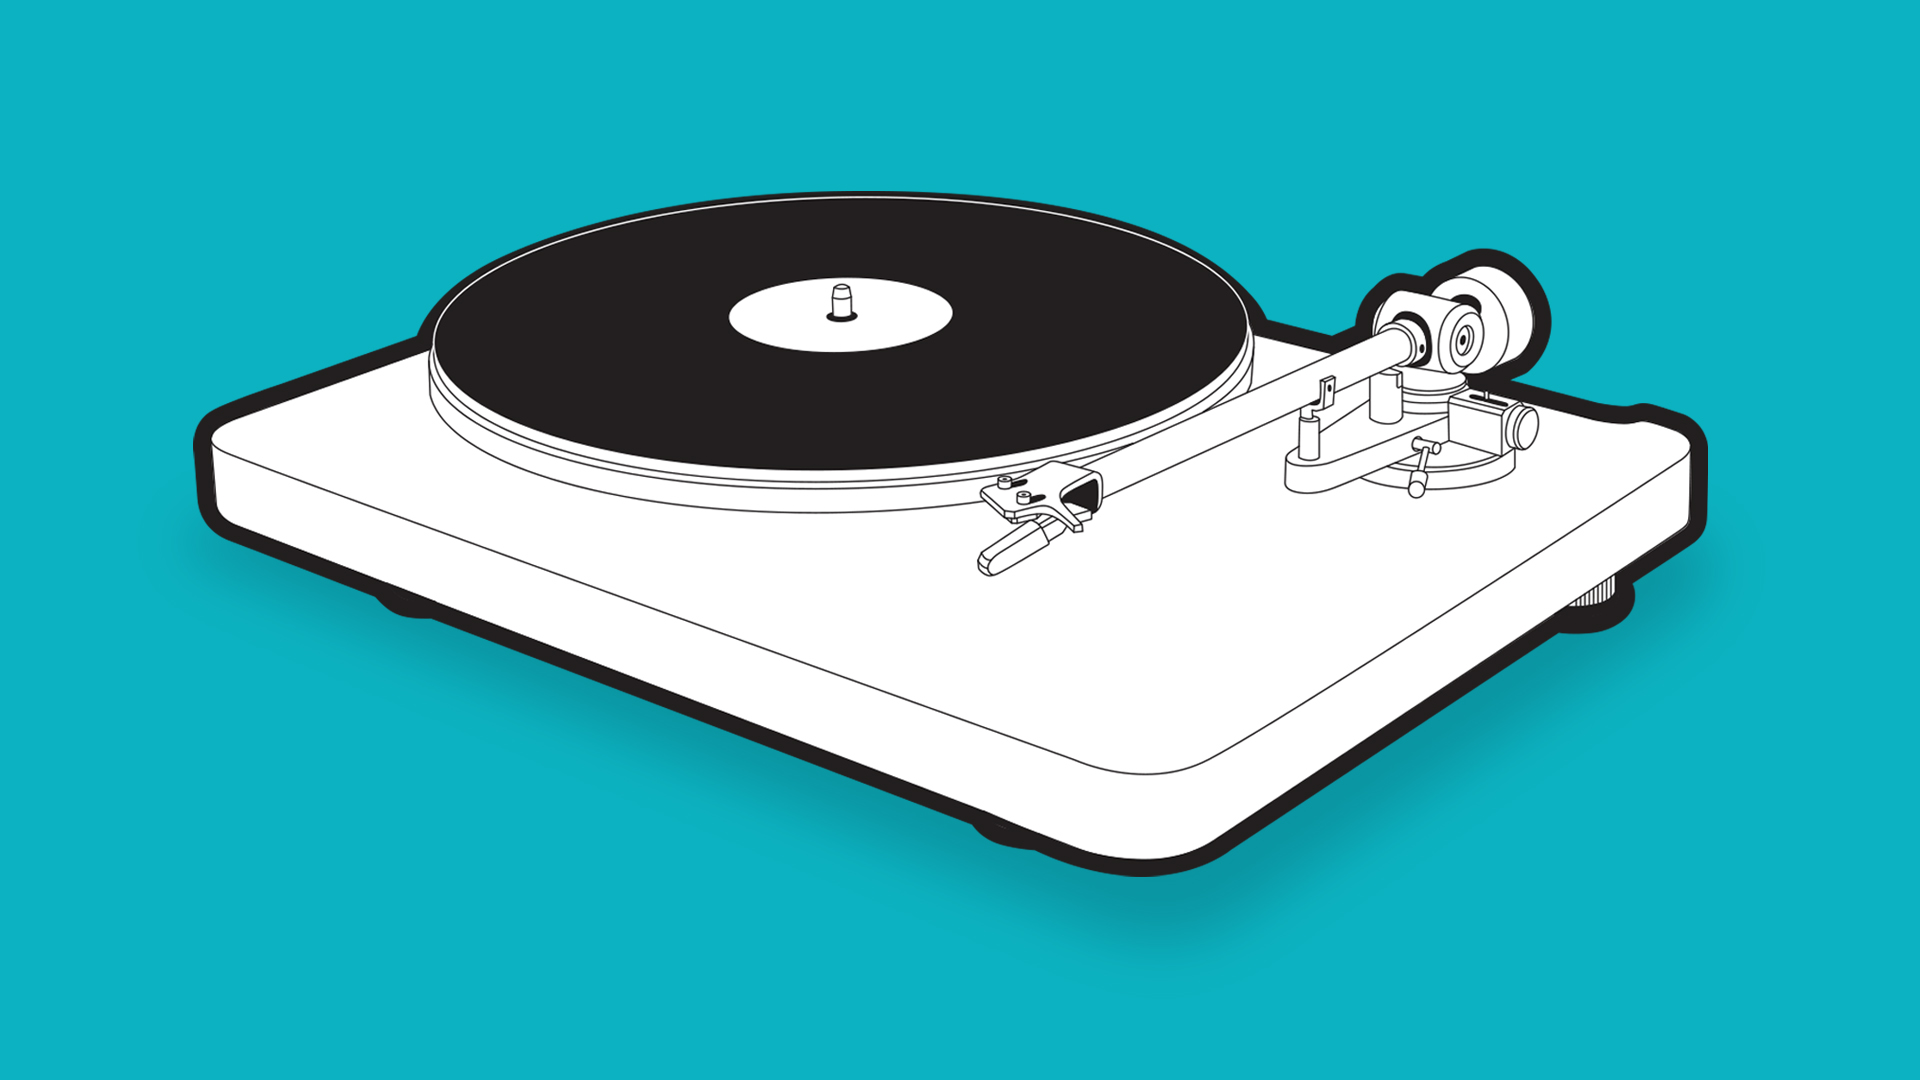 NAD C 558 turntable illustration with light blue background